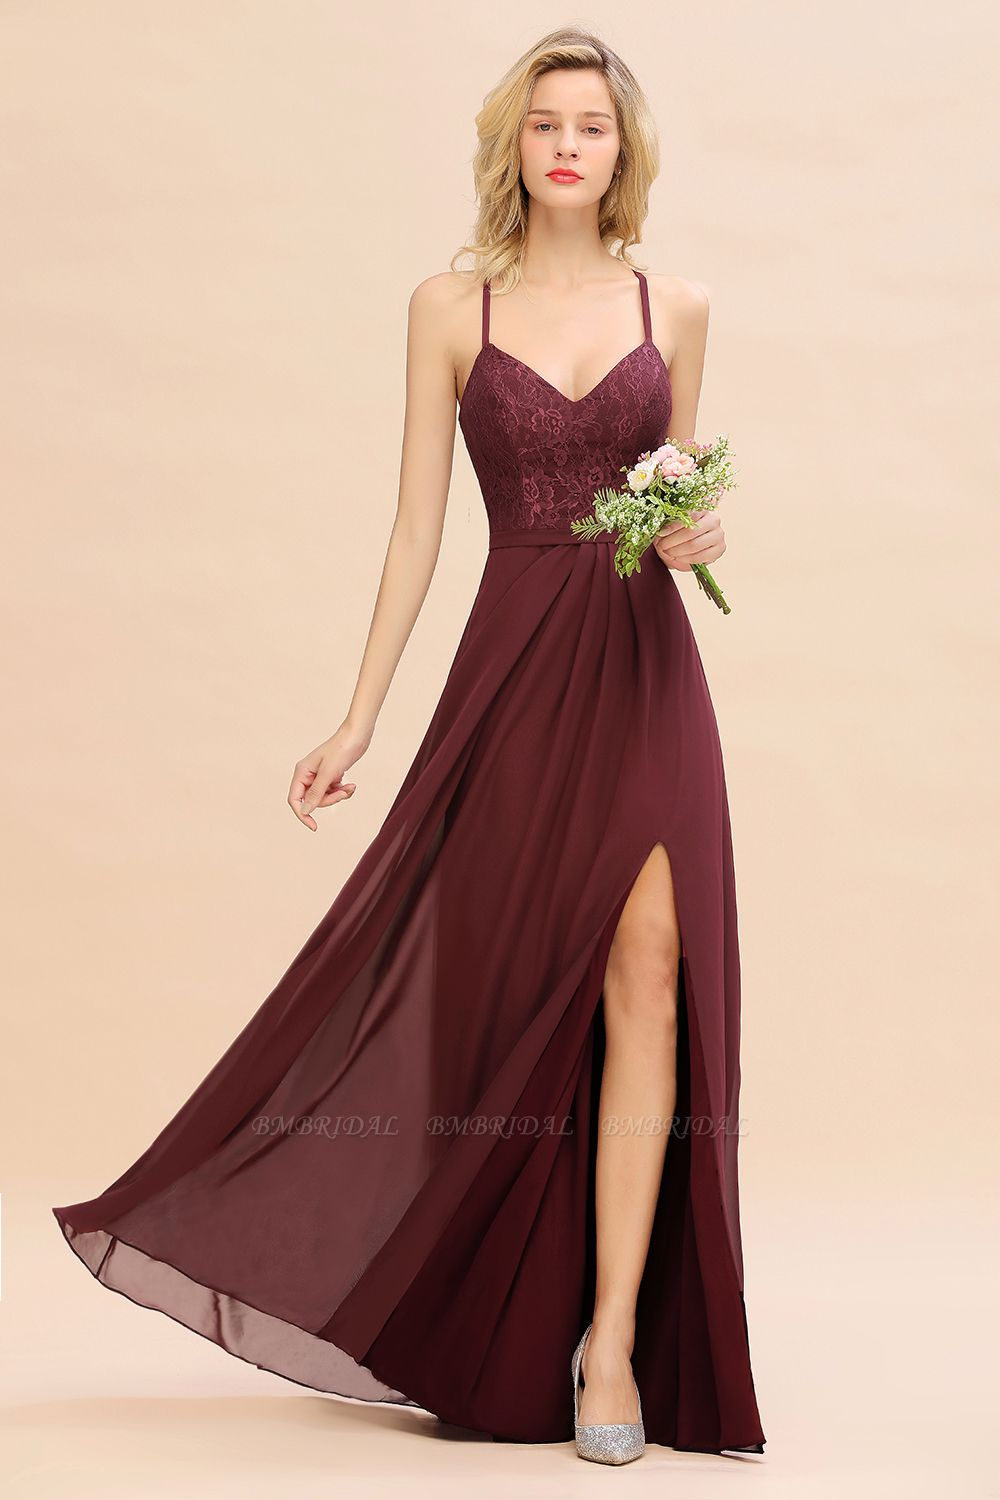 Elegant CrissCross Back Burgundy Lace Bridesmaid Dress With Spaghetti Straps